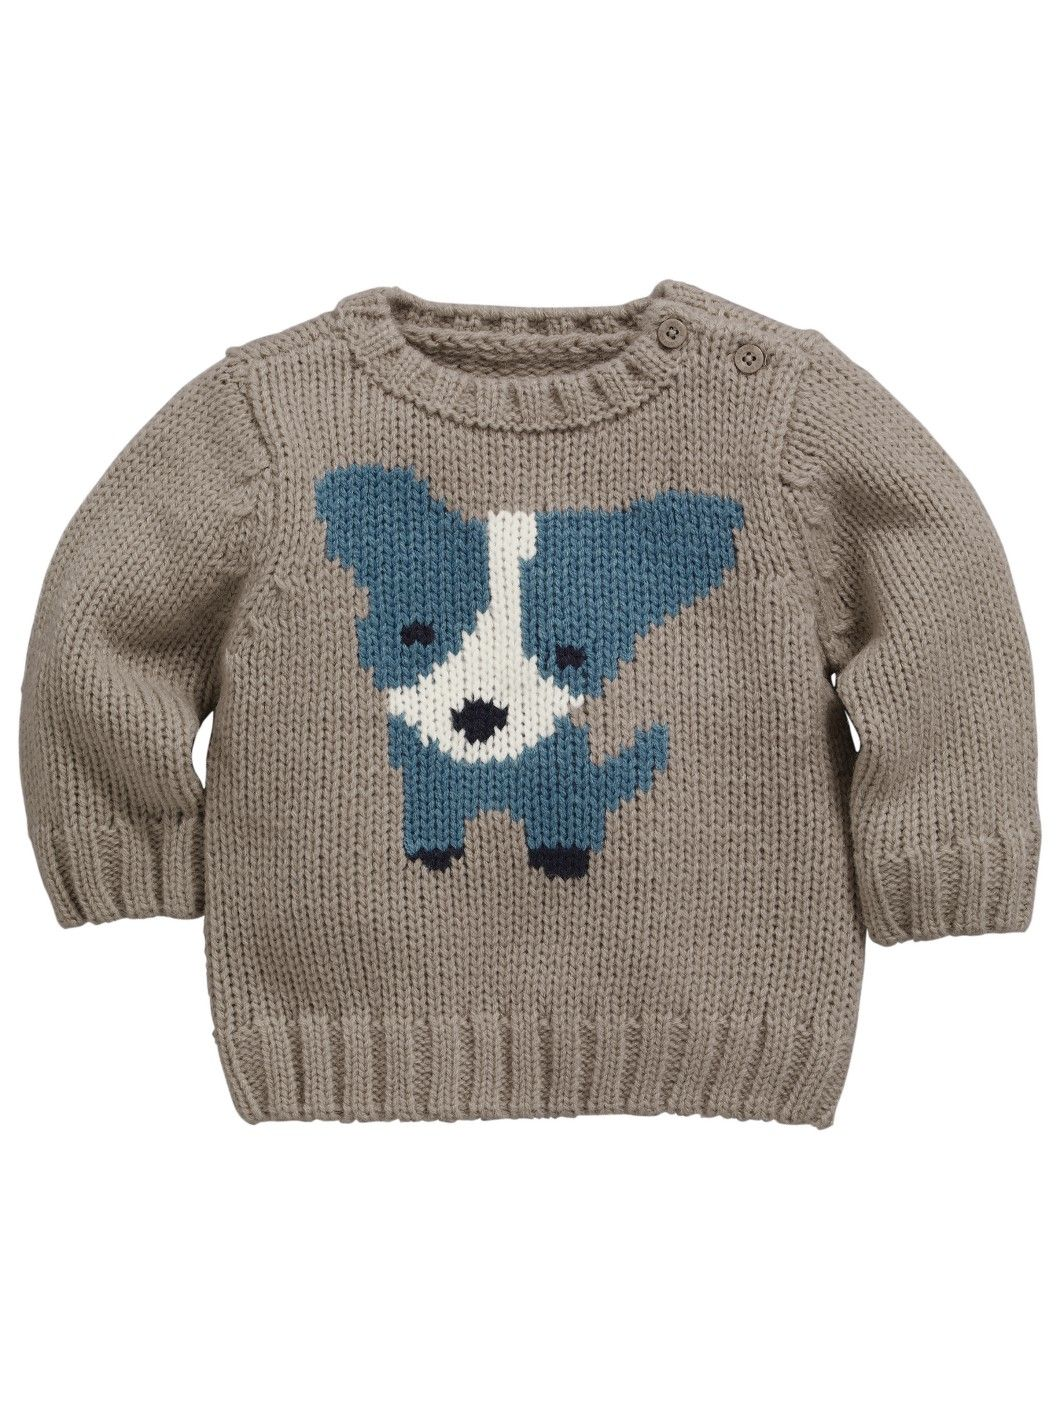 98ad06ccd2875 Ladybird Baby Boys Dog Knitted Jumper